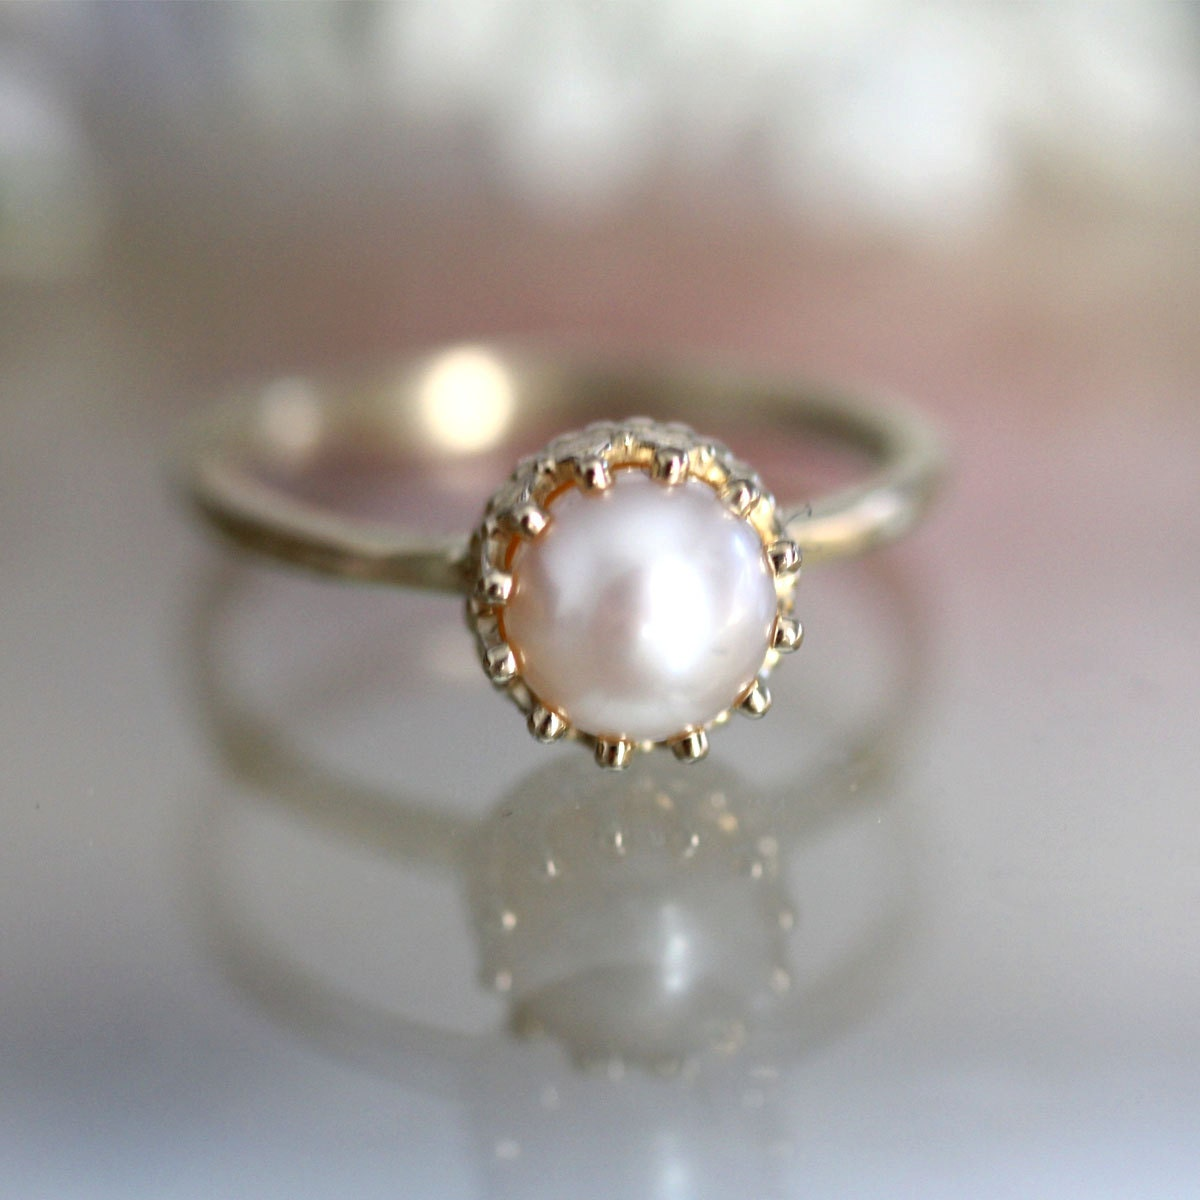 Pearl Ring Old Fashioned Setting